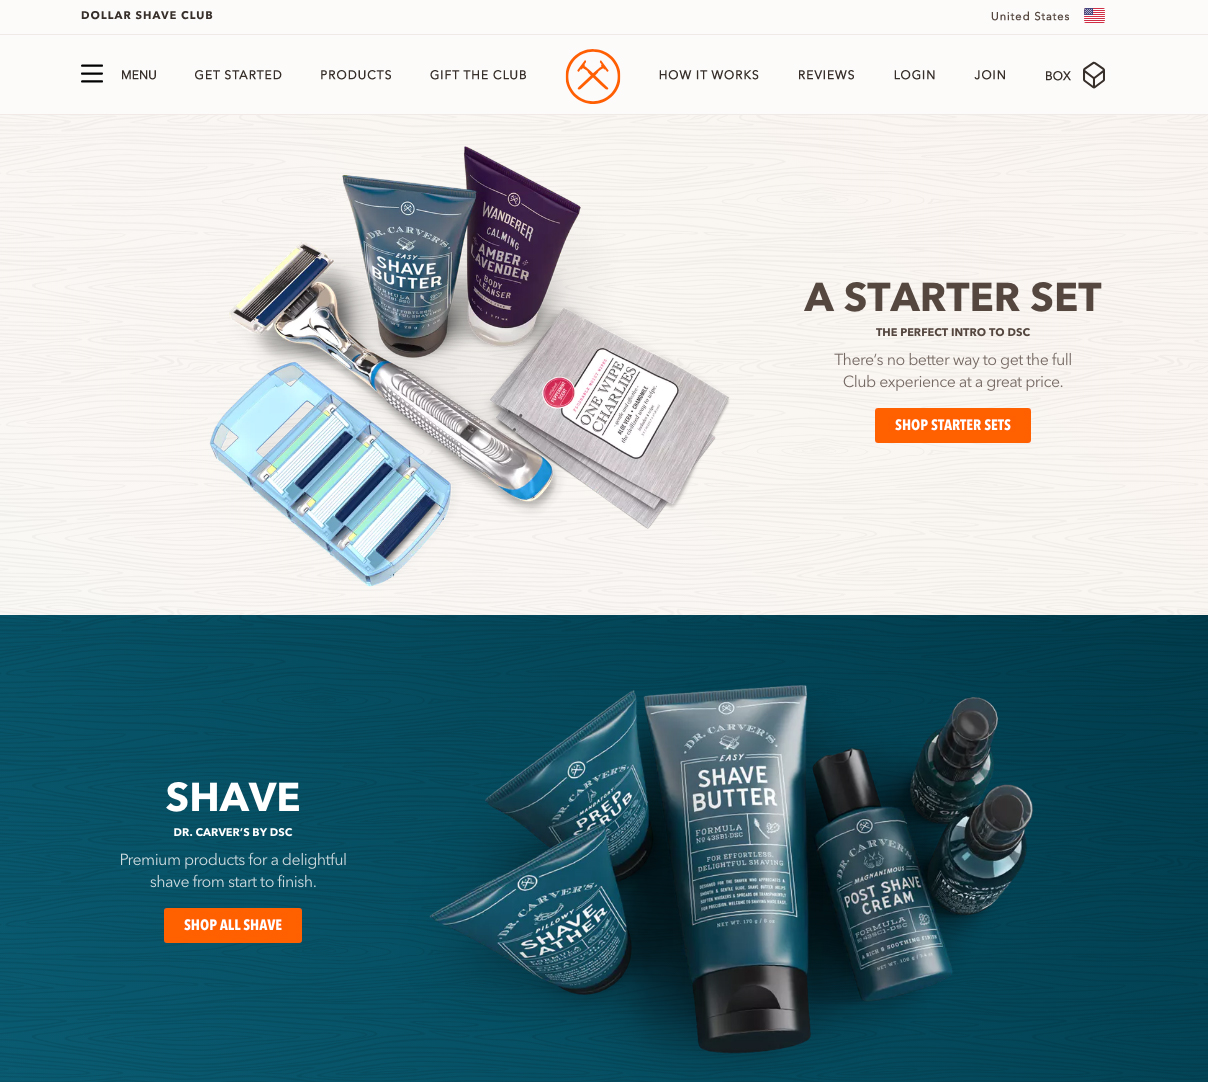 Dollar Shave Club | 14 Examples Of Beautiful, Easy-To-Shop Ecommerce Websites